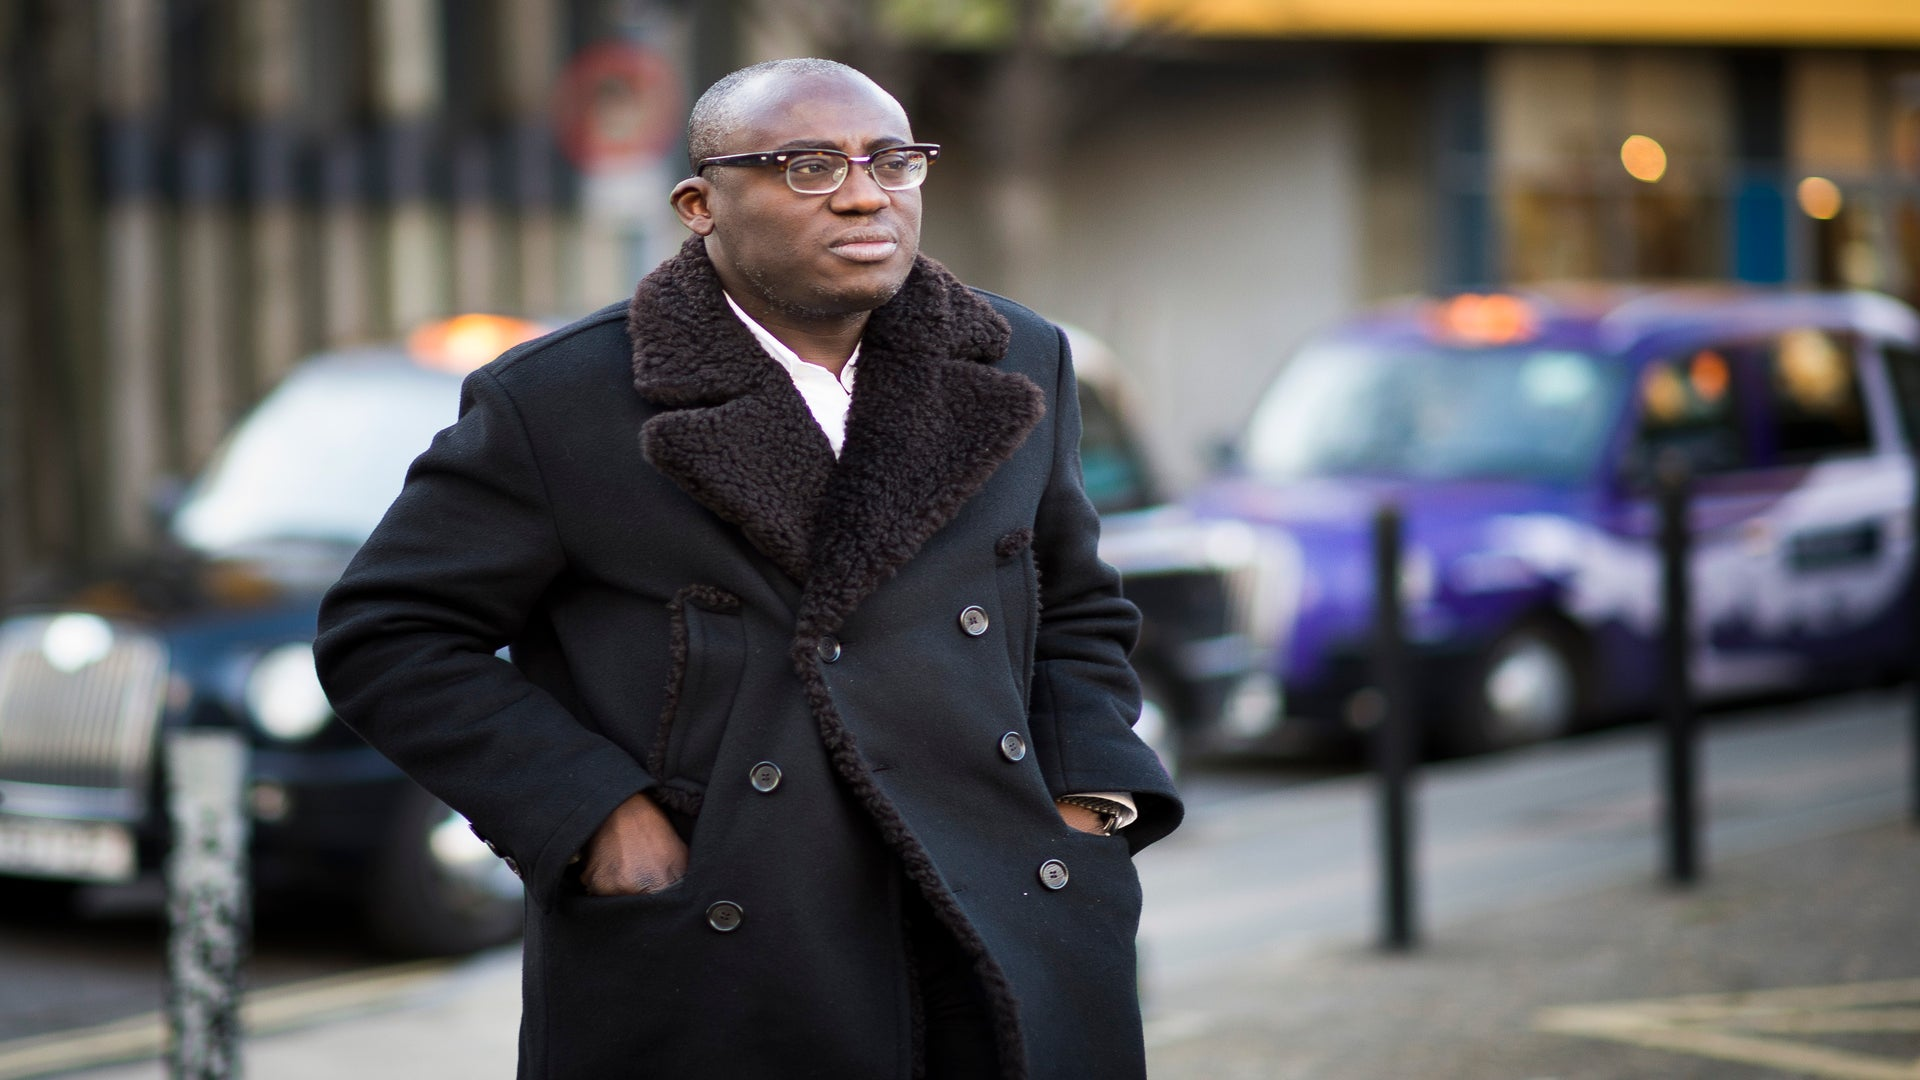 It's a Celebration! Edward Enninful Appointed As Editor in Chief of British Vogue